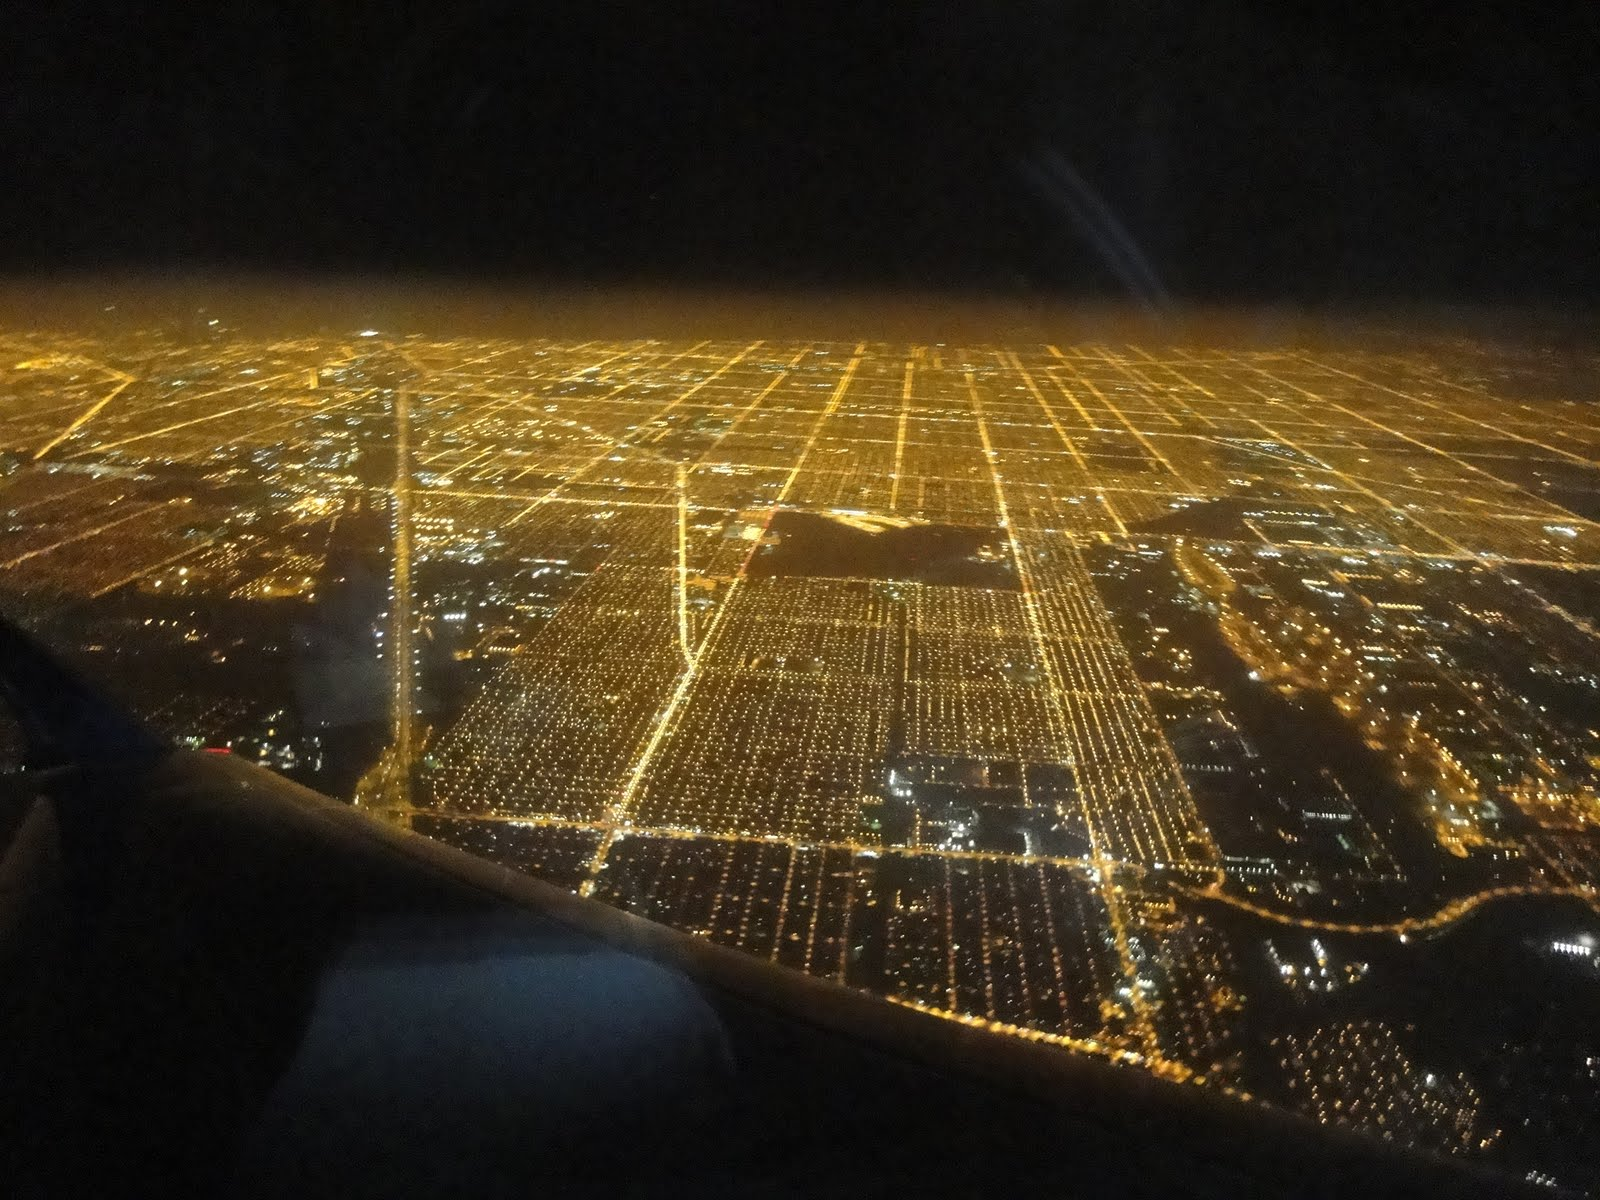 Live to Garden: Chicago at Night